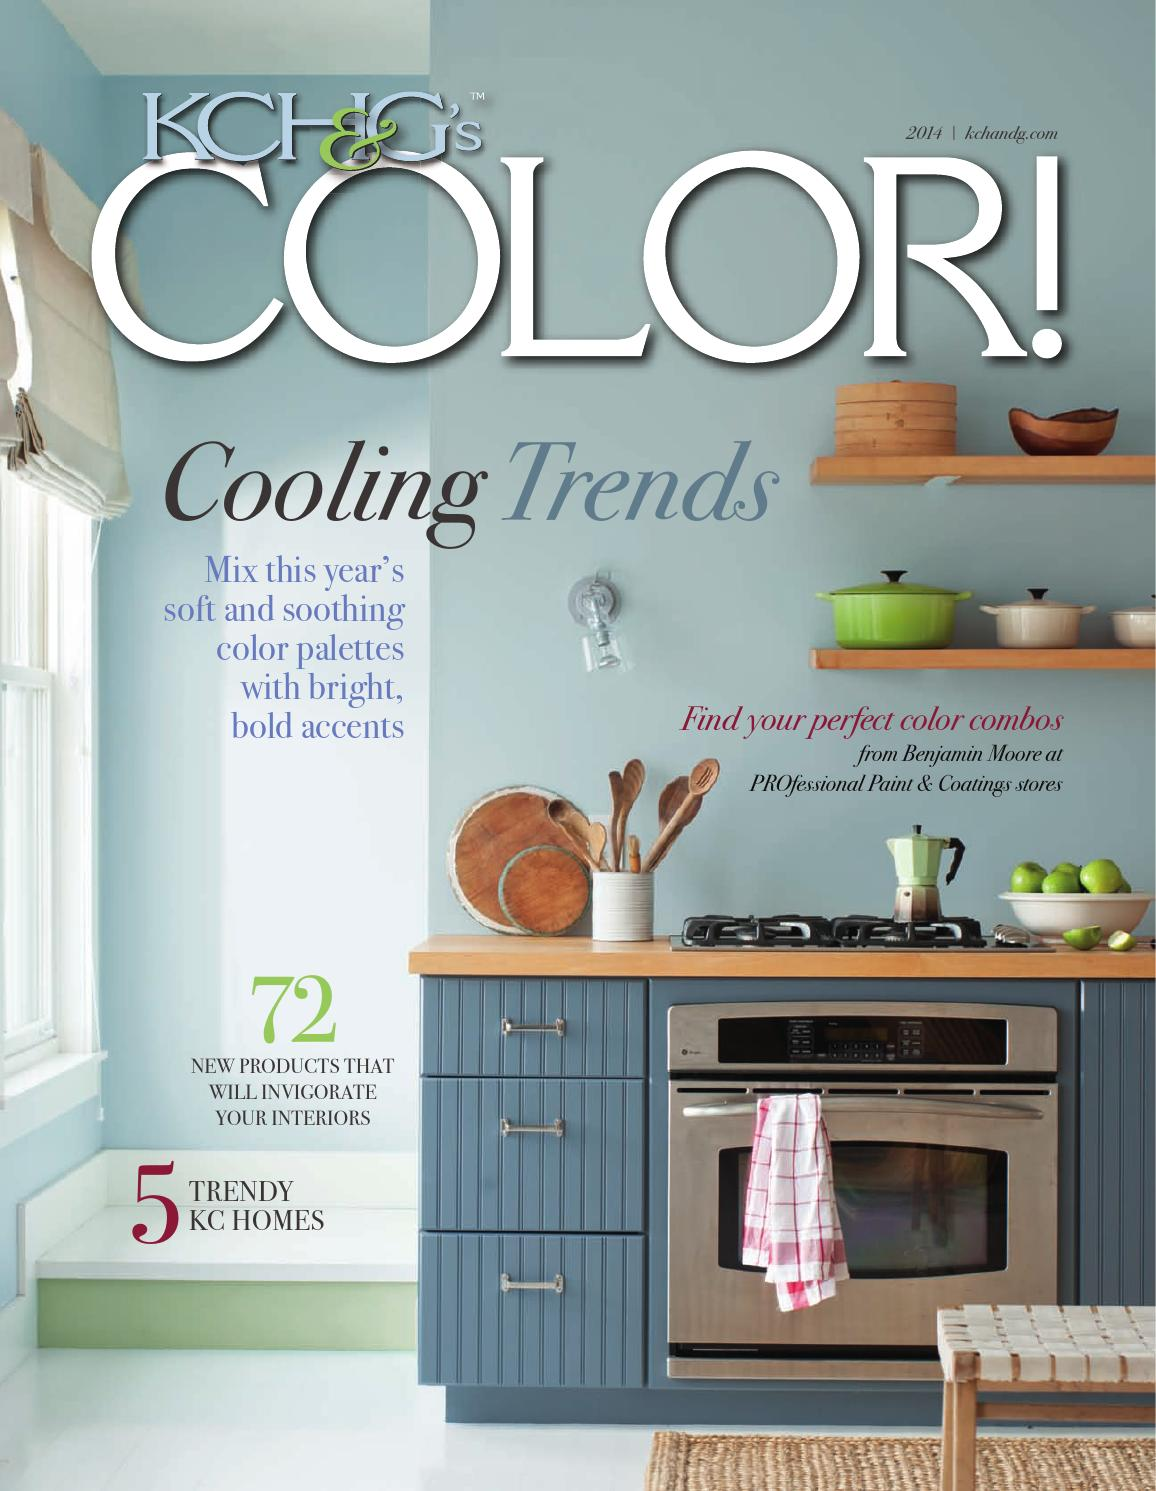 2014 KCH&G COLOR ISSUE by Network Communications Inc. - issuu